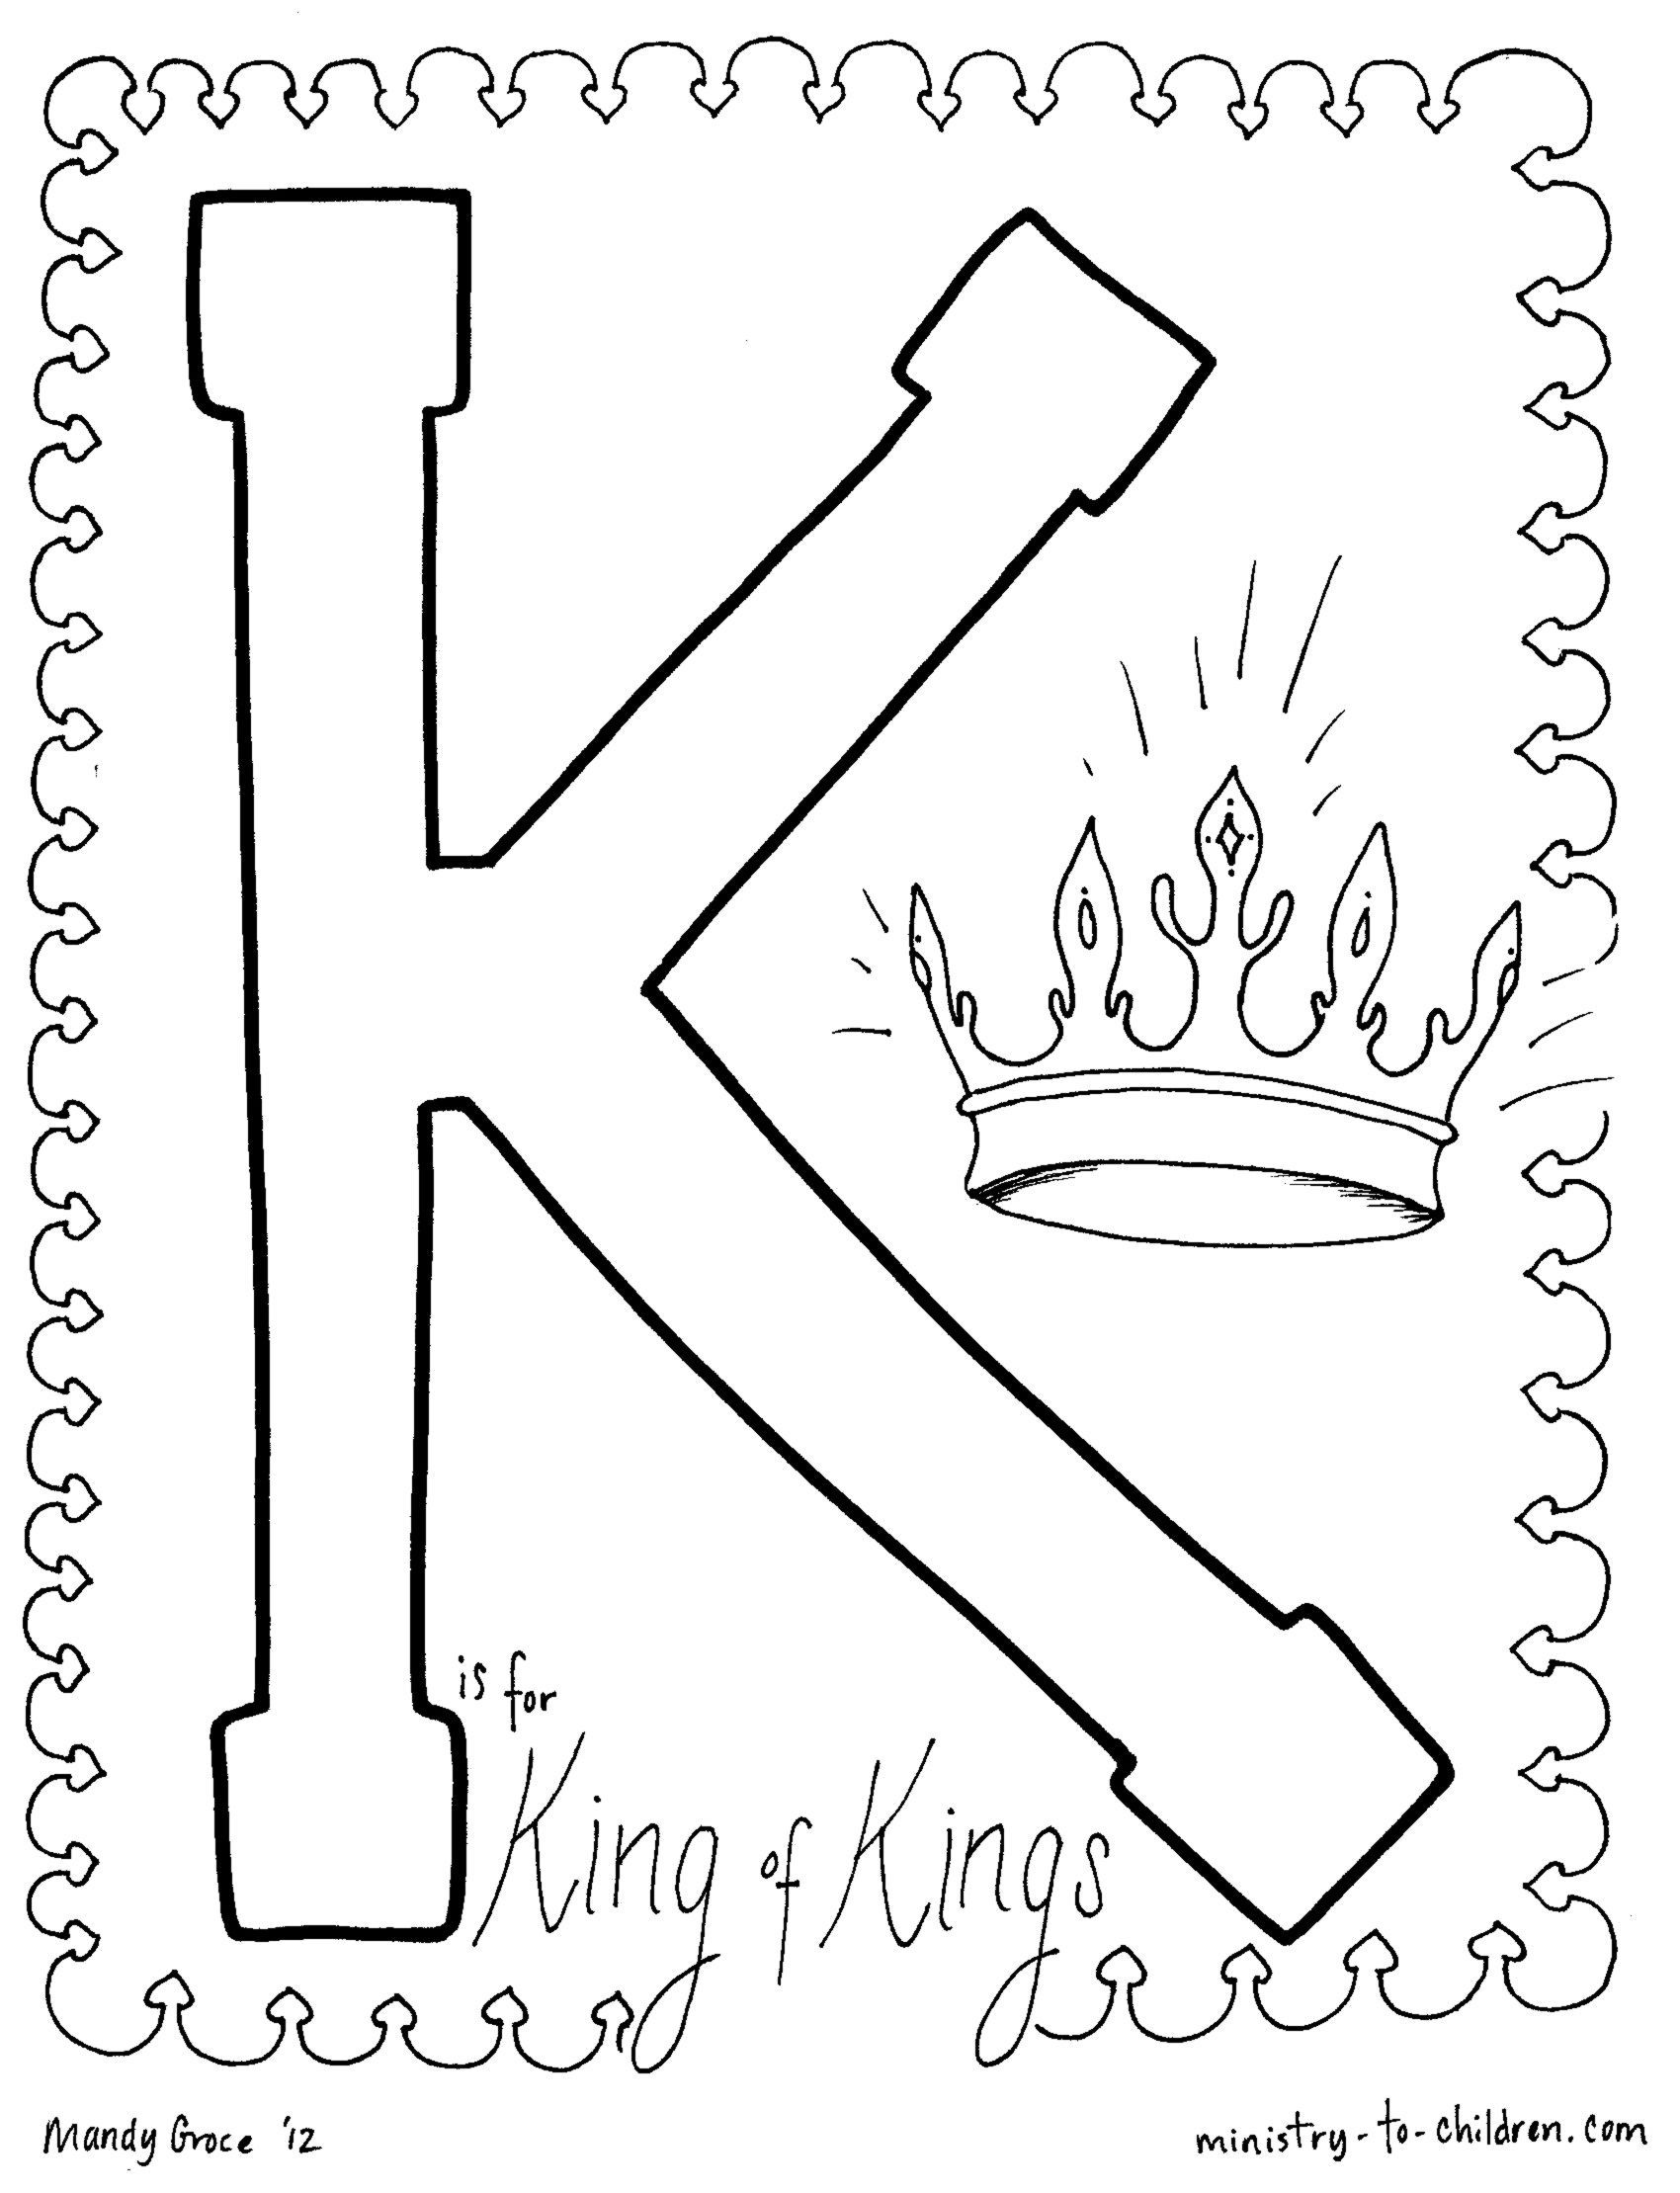 Christ The King Sunday Coloring Page Coloring Pages - Christ-the-king-coloring-page